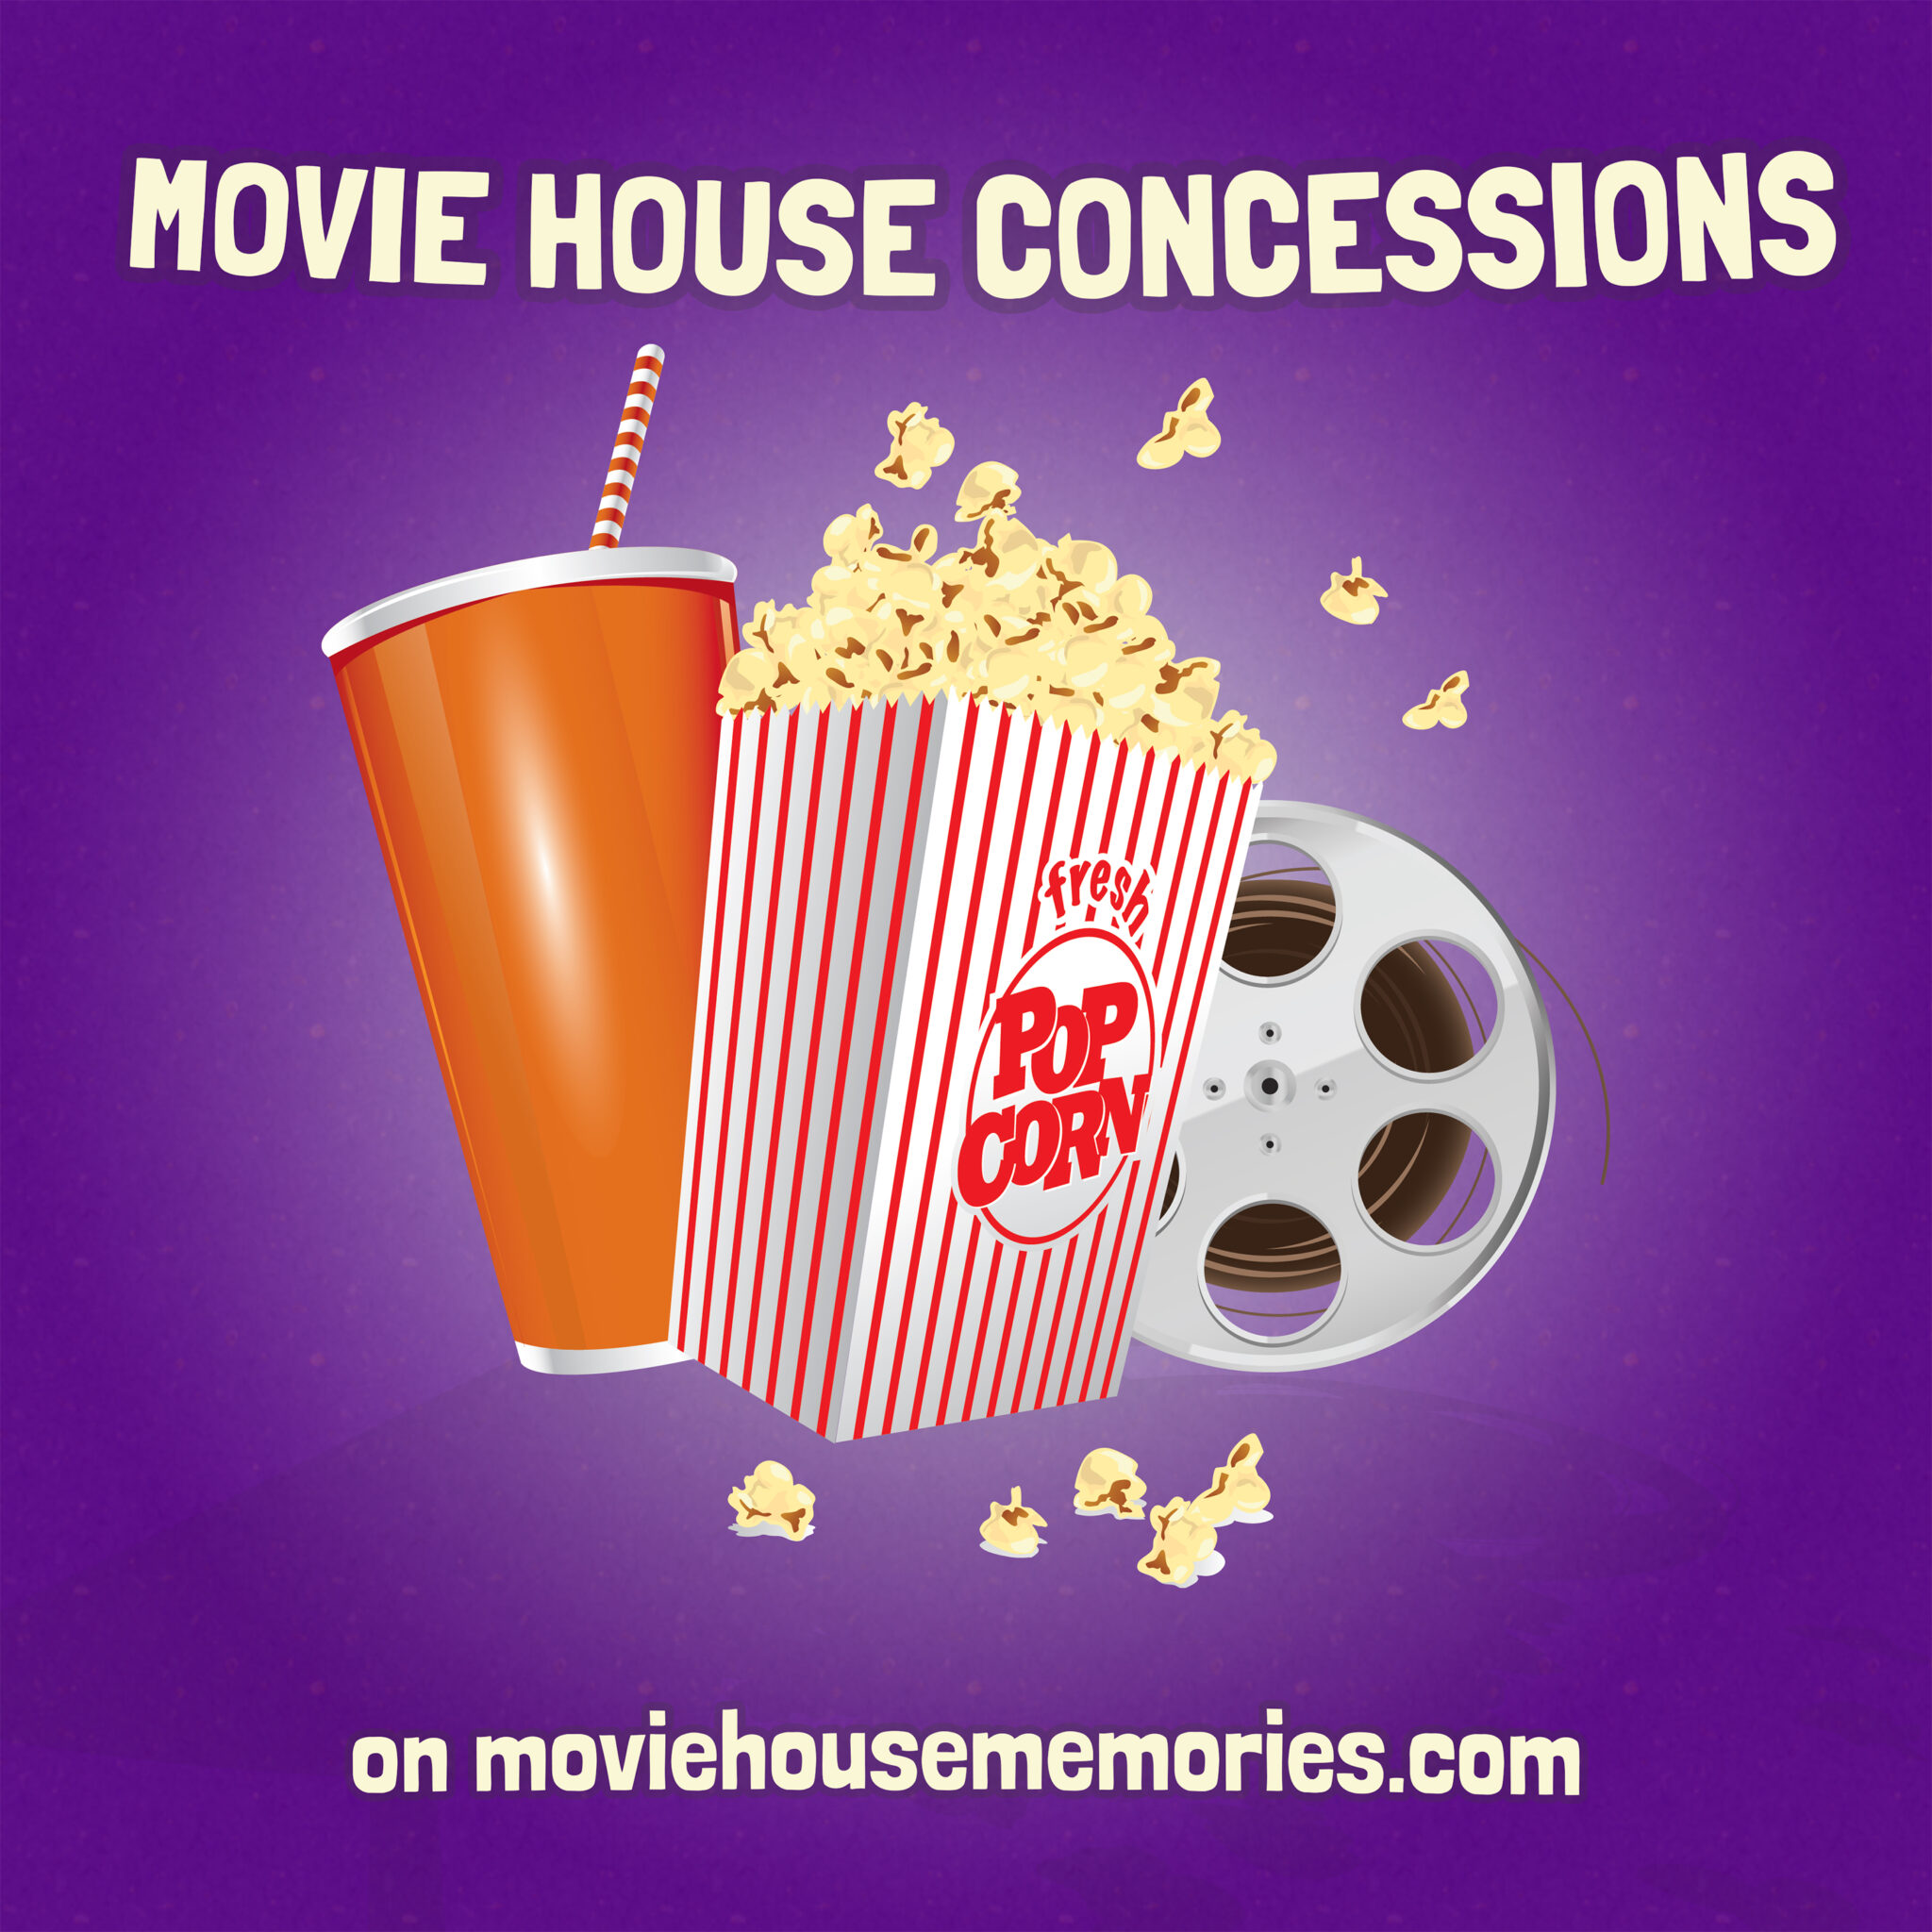 Movie House Concessions – Movie House Memories